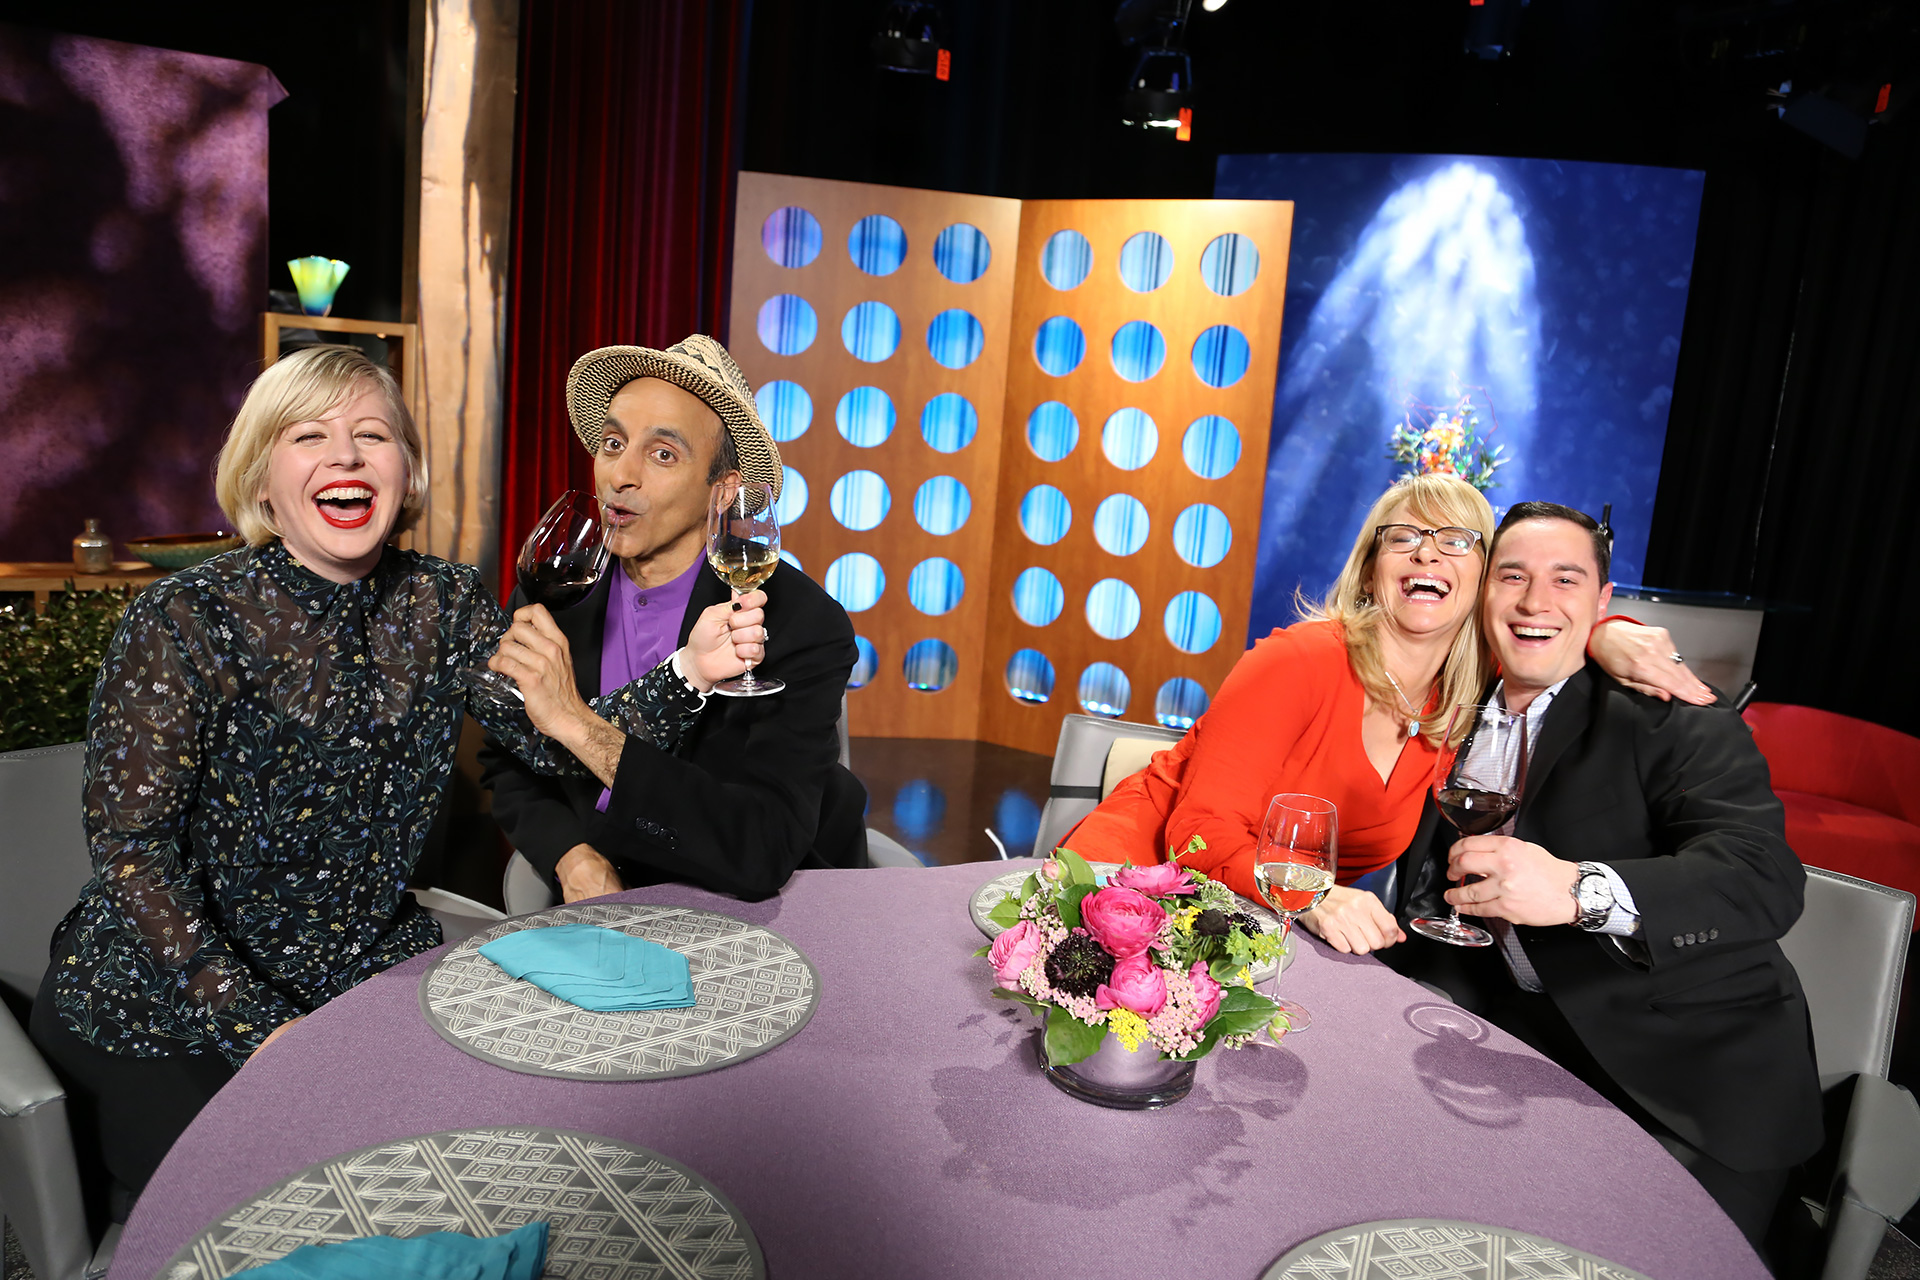 Host Leslie Sbrocco and guests having fun on the set of season 12 episode 15.